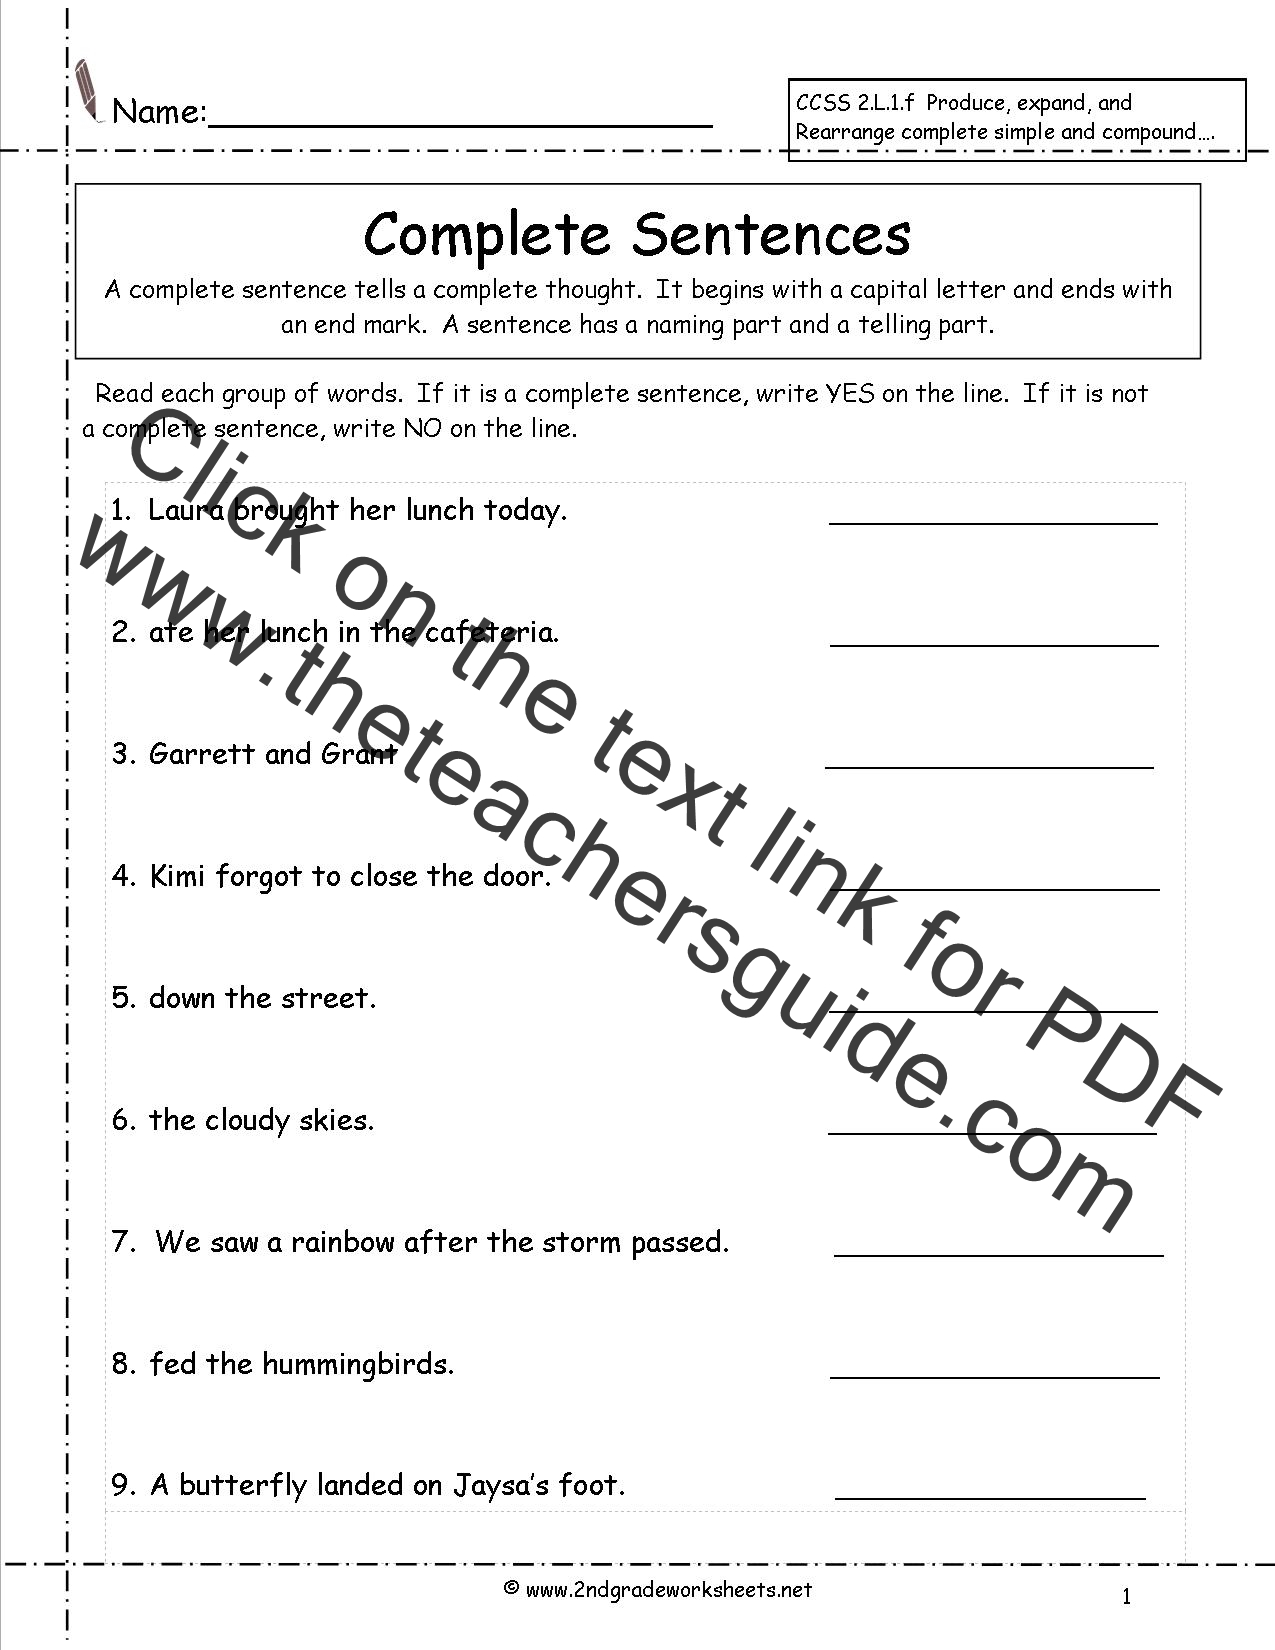 Worksheet Correct Sentences Worksheet second grade sentences worksheets ccss 2 l 1 f complete worksheets